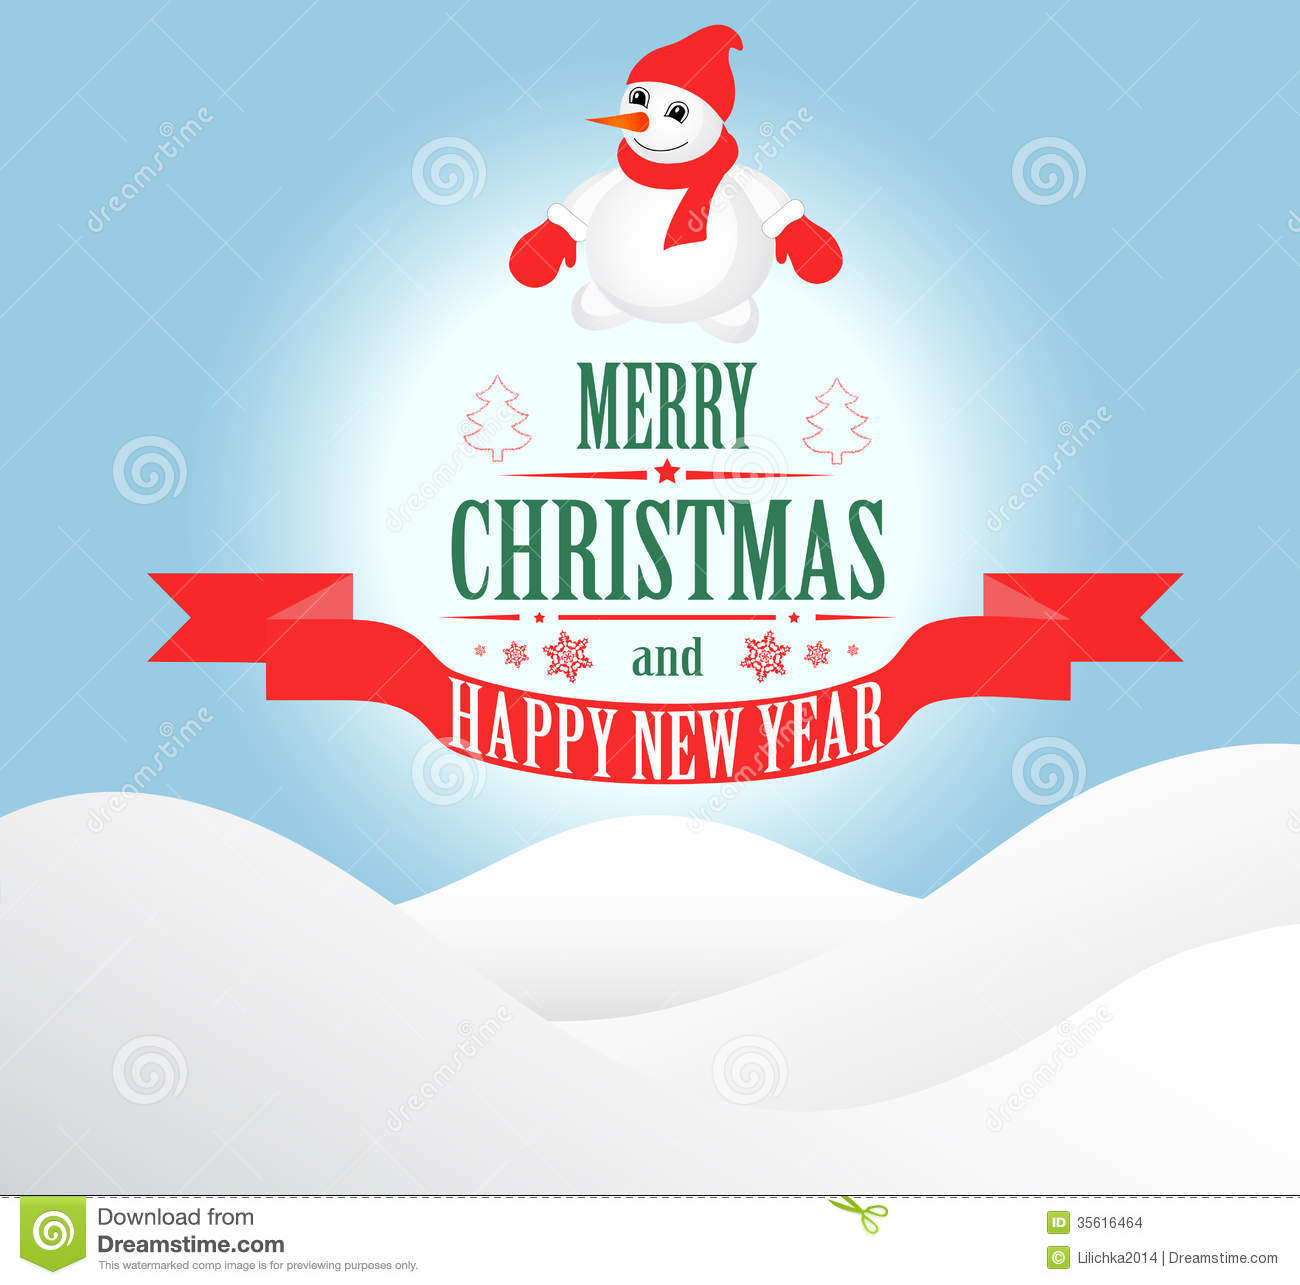 merry christmas greeting card stock illustration illustration of